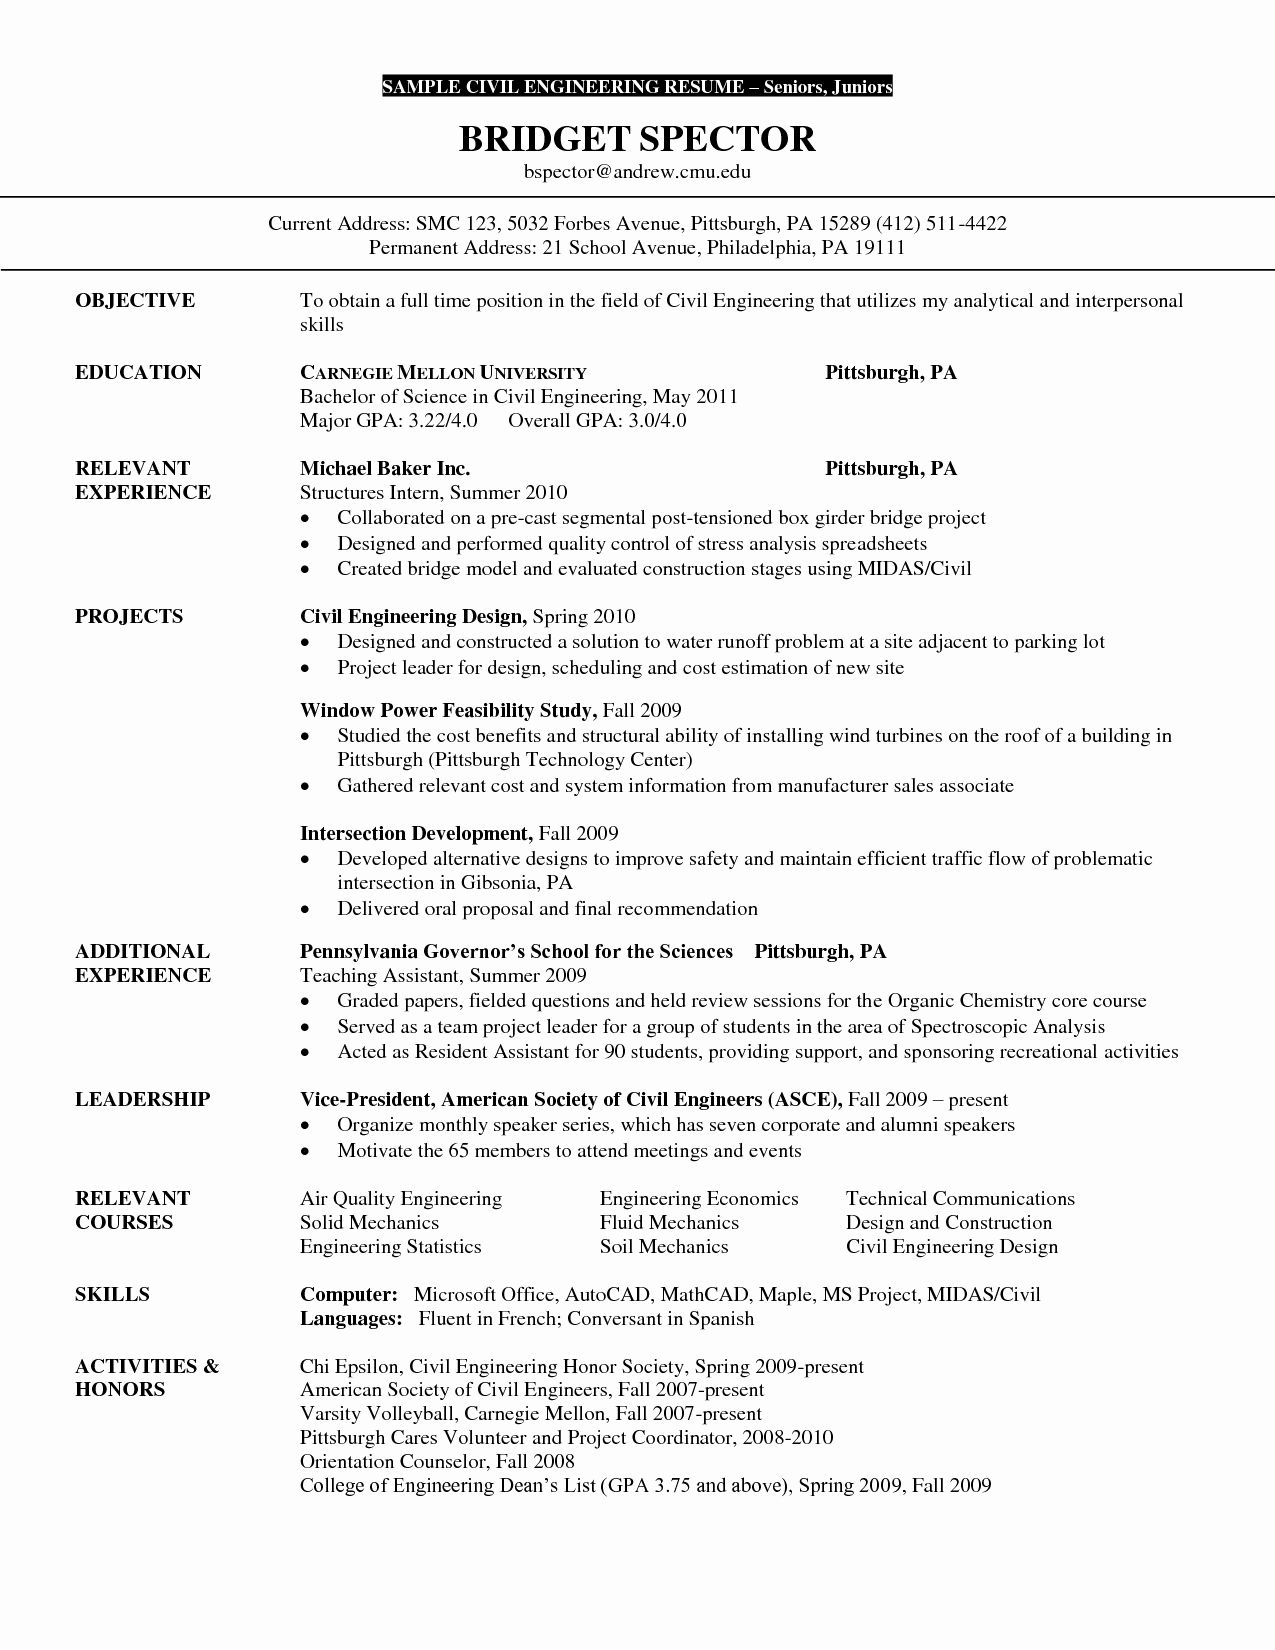 20 Civil Engineering Intern Resume In 2020 Internship Resume